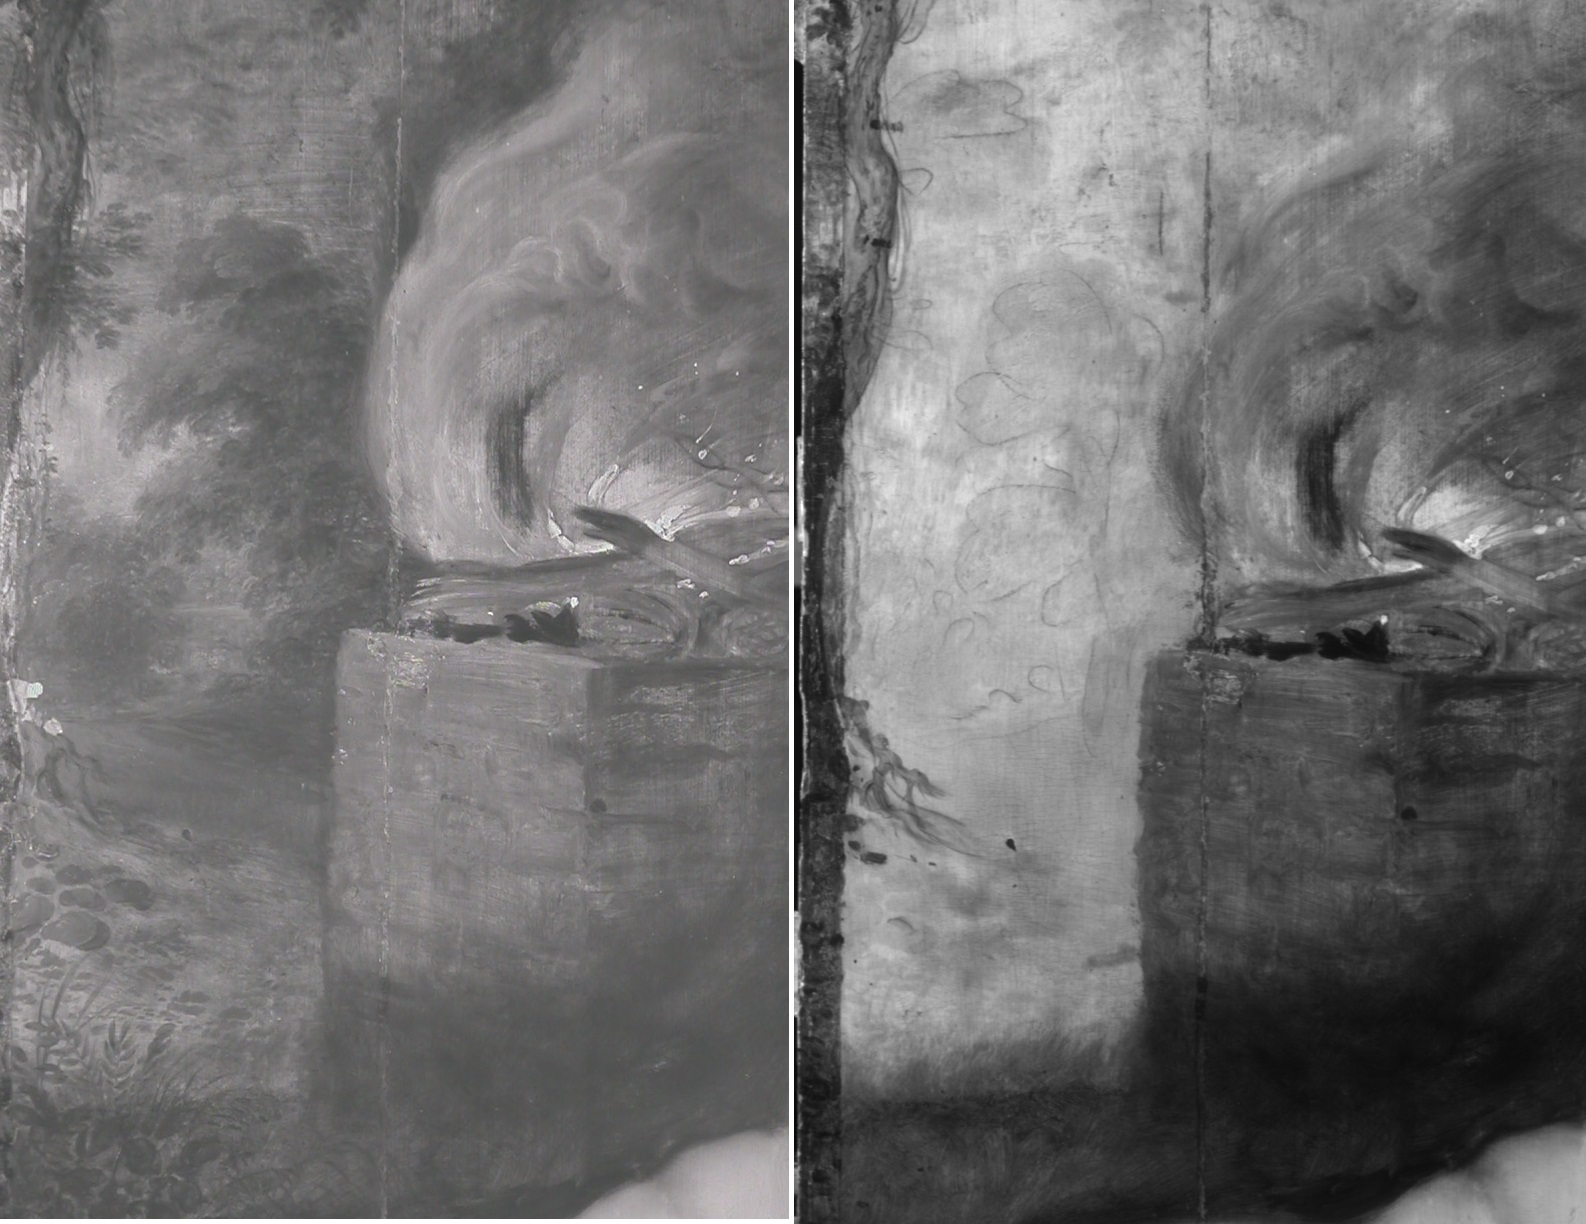 Digital IR photograph (left) taken with Nikon Coolpix E995 compared with IR Reflectogram  (right) made with the OSIRIS camera. Both images of P.1978.PG.353 Cain Slaying Abel by Peter Paul Rubens, © the Samuel Courtauld Trust, The Courtauld Gallery, London